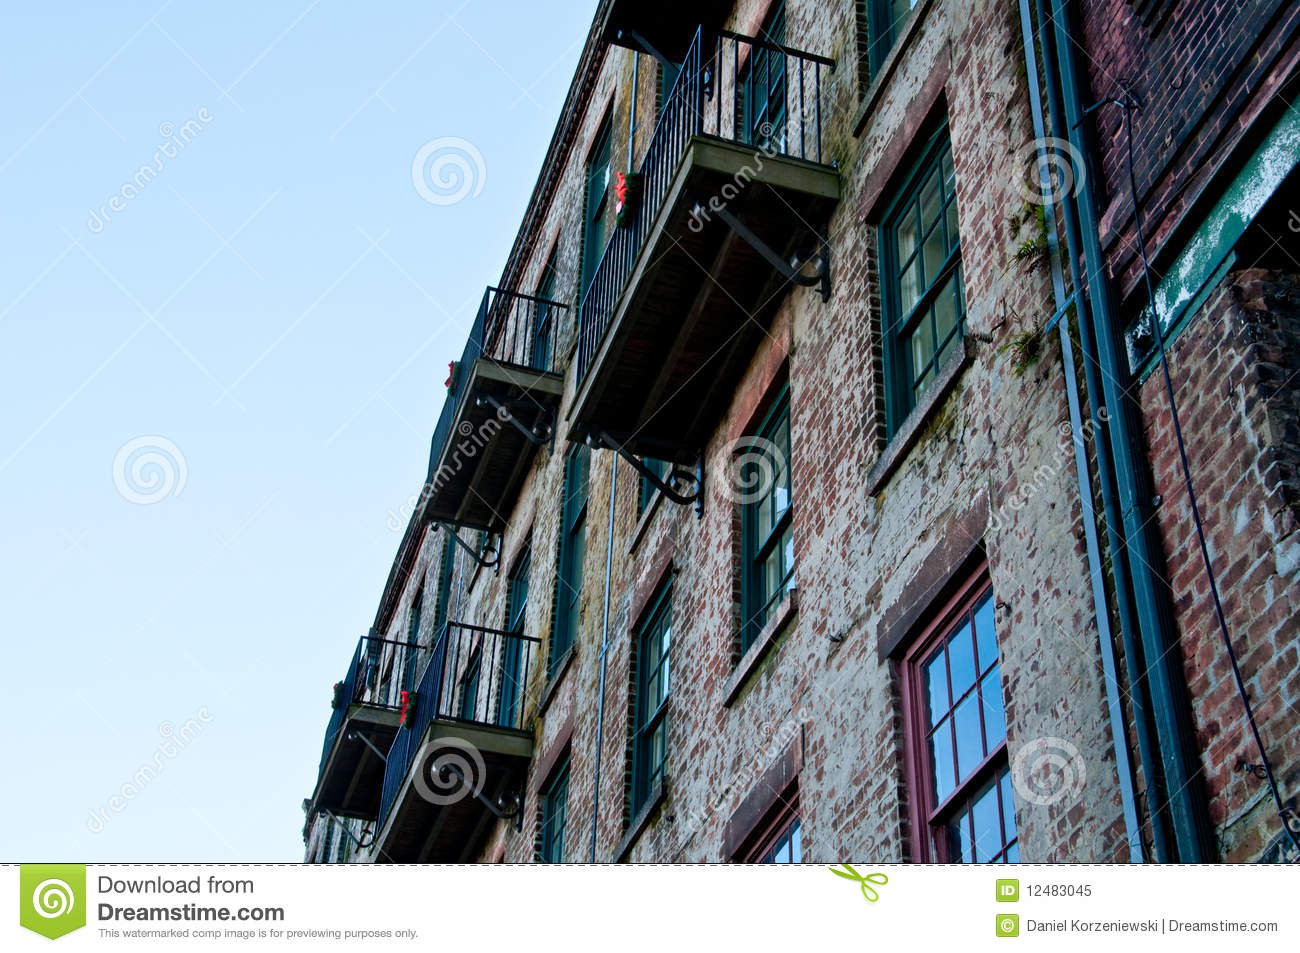 Old wall and Balconies